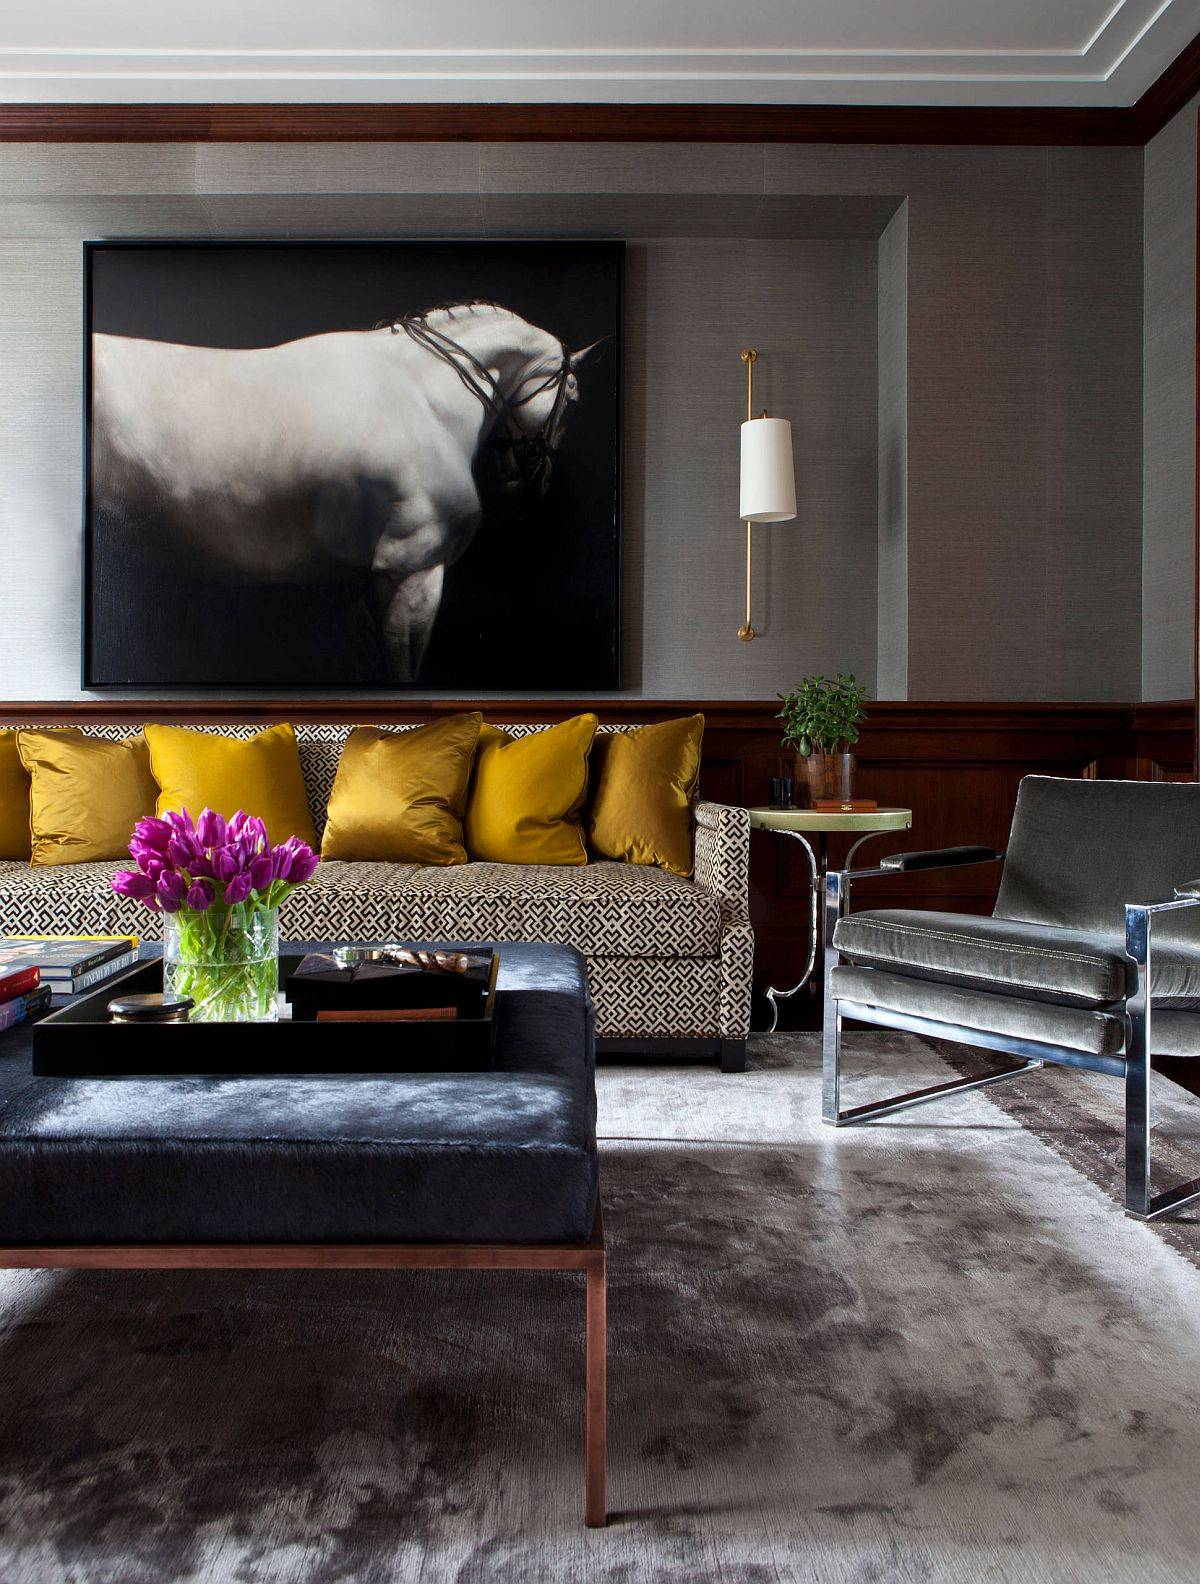 Polished-living-room-with-luxurious-gold-throw-pillows-that-make-a-bold-visual-statement-48903